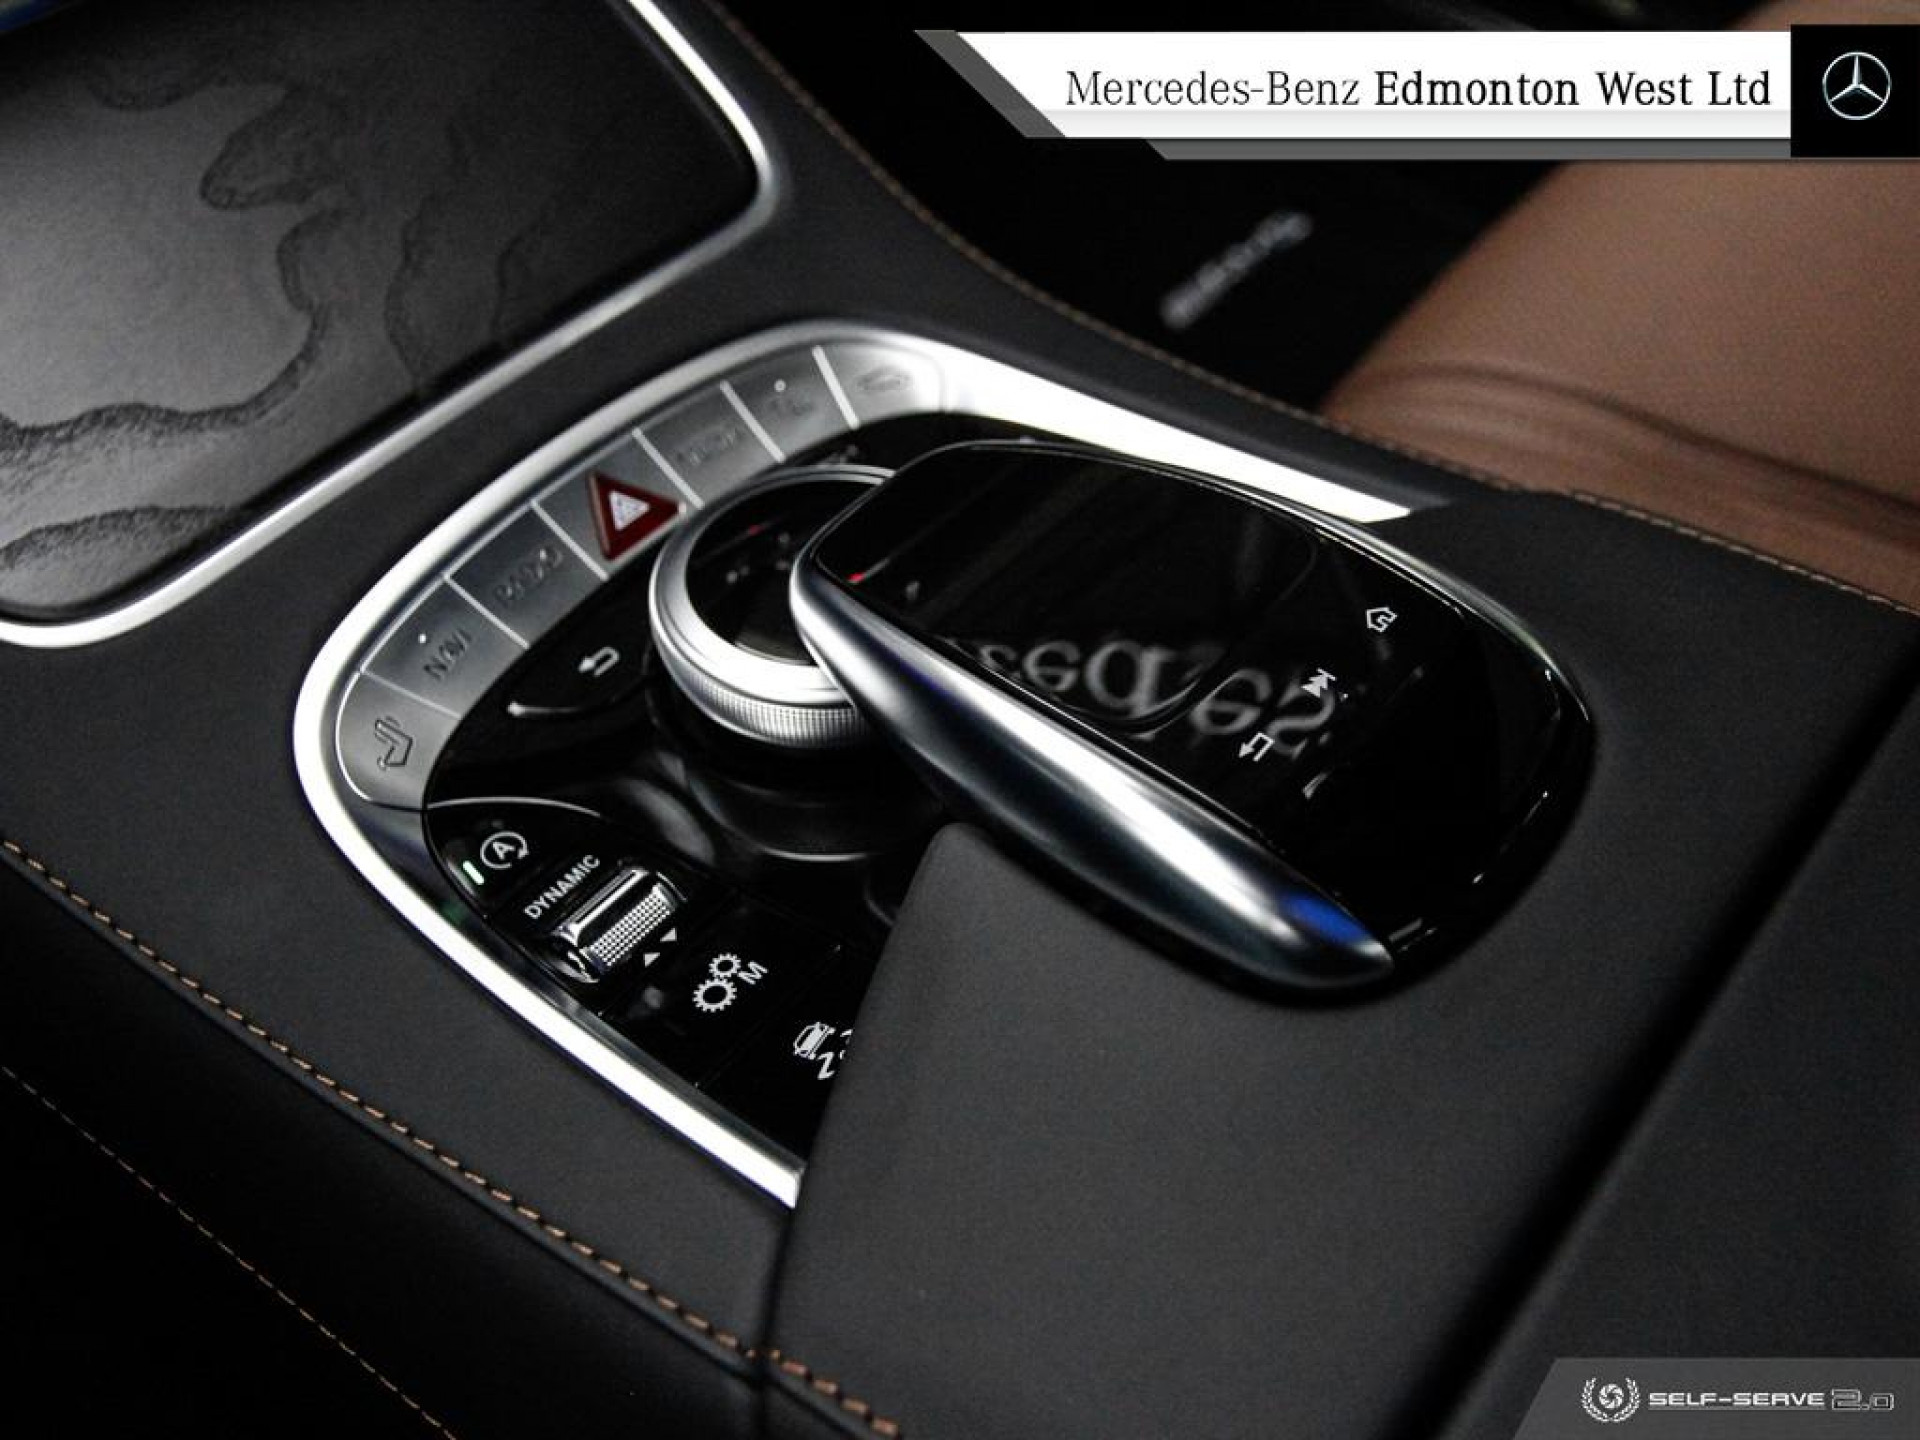 New 2020 Mercedes Benz S-Class AMG 63 4MATIC+ Sedan